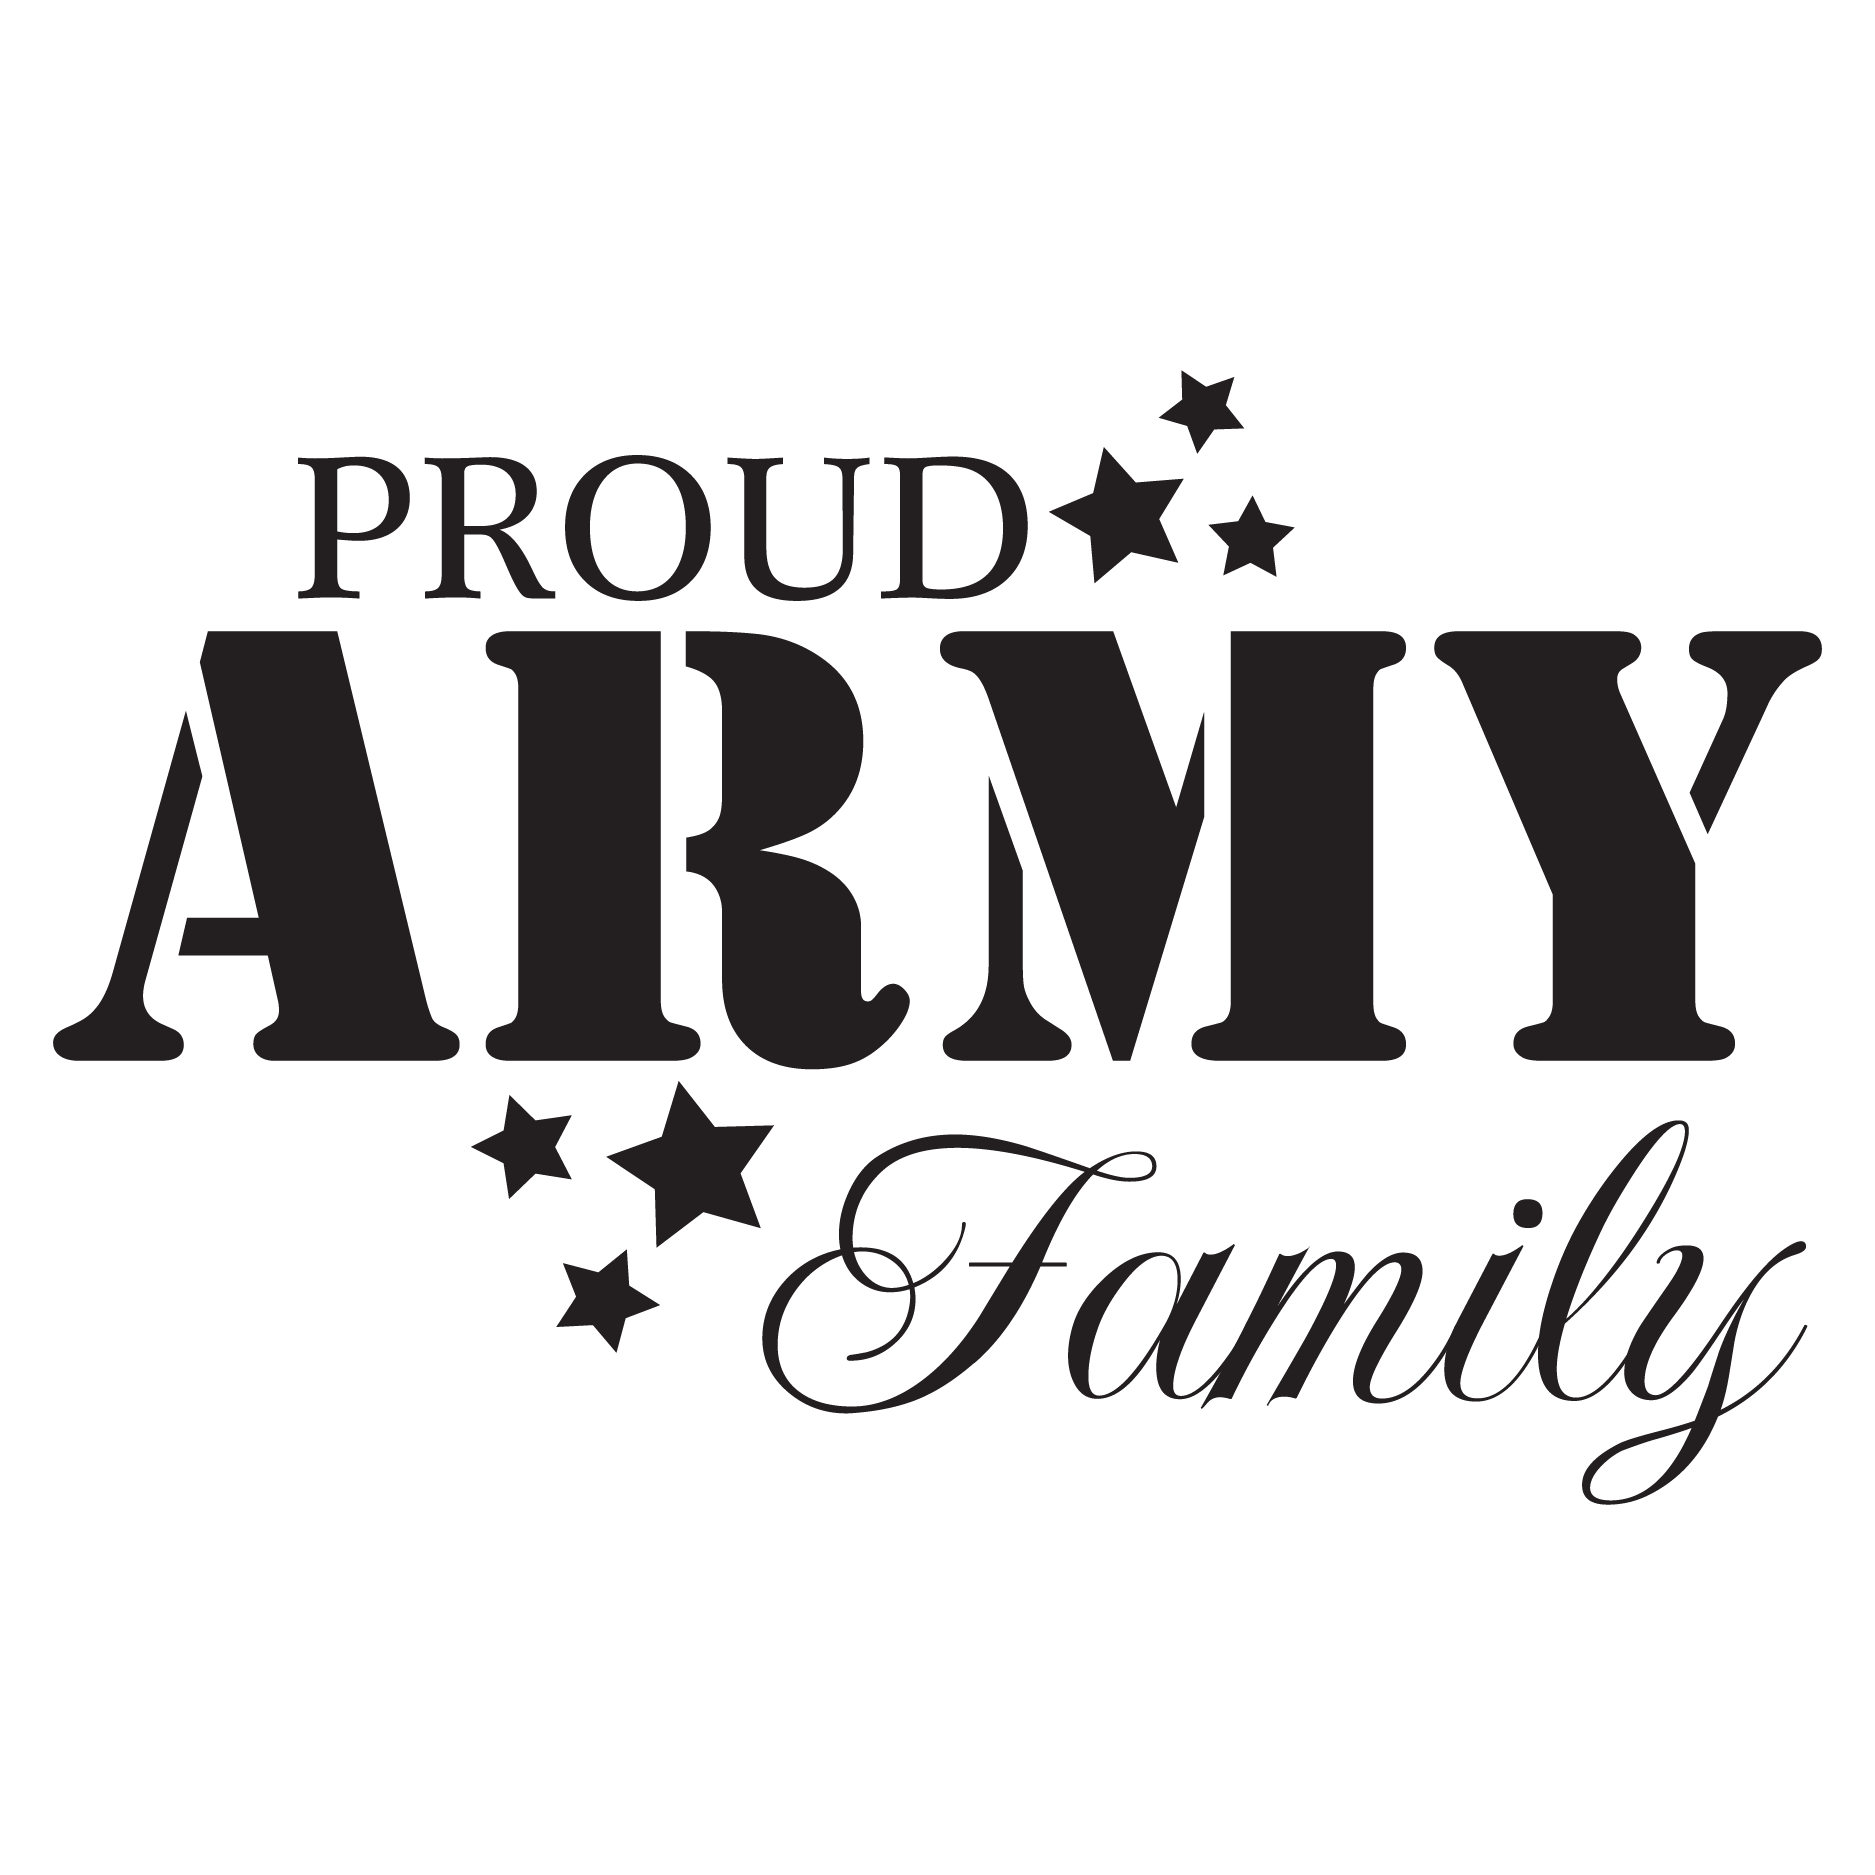 proud army family wall quotes u2122 decal